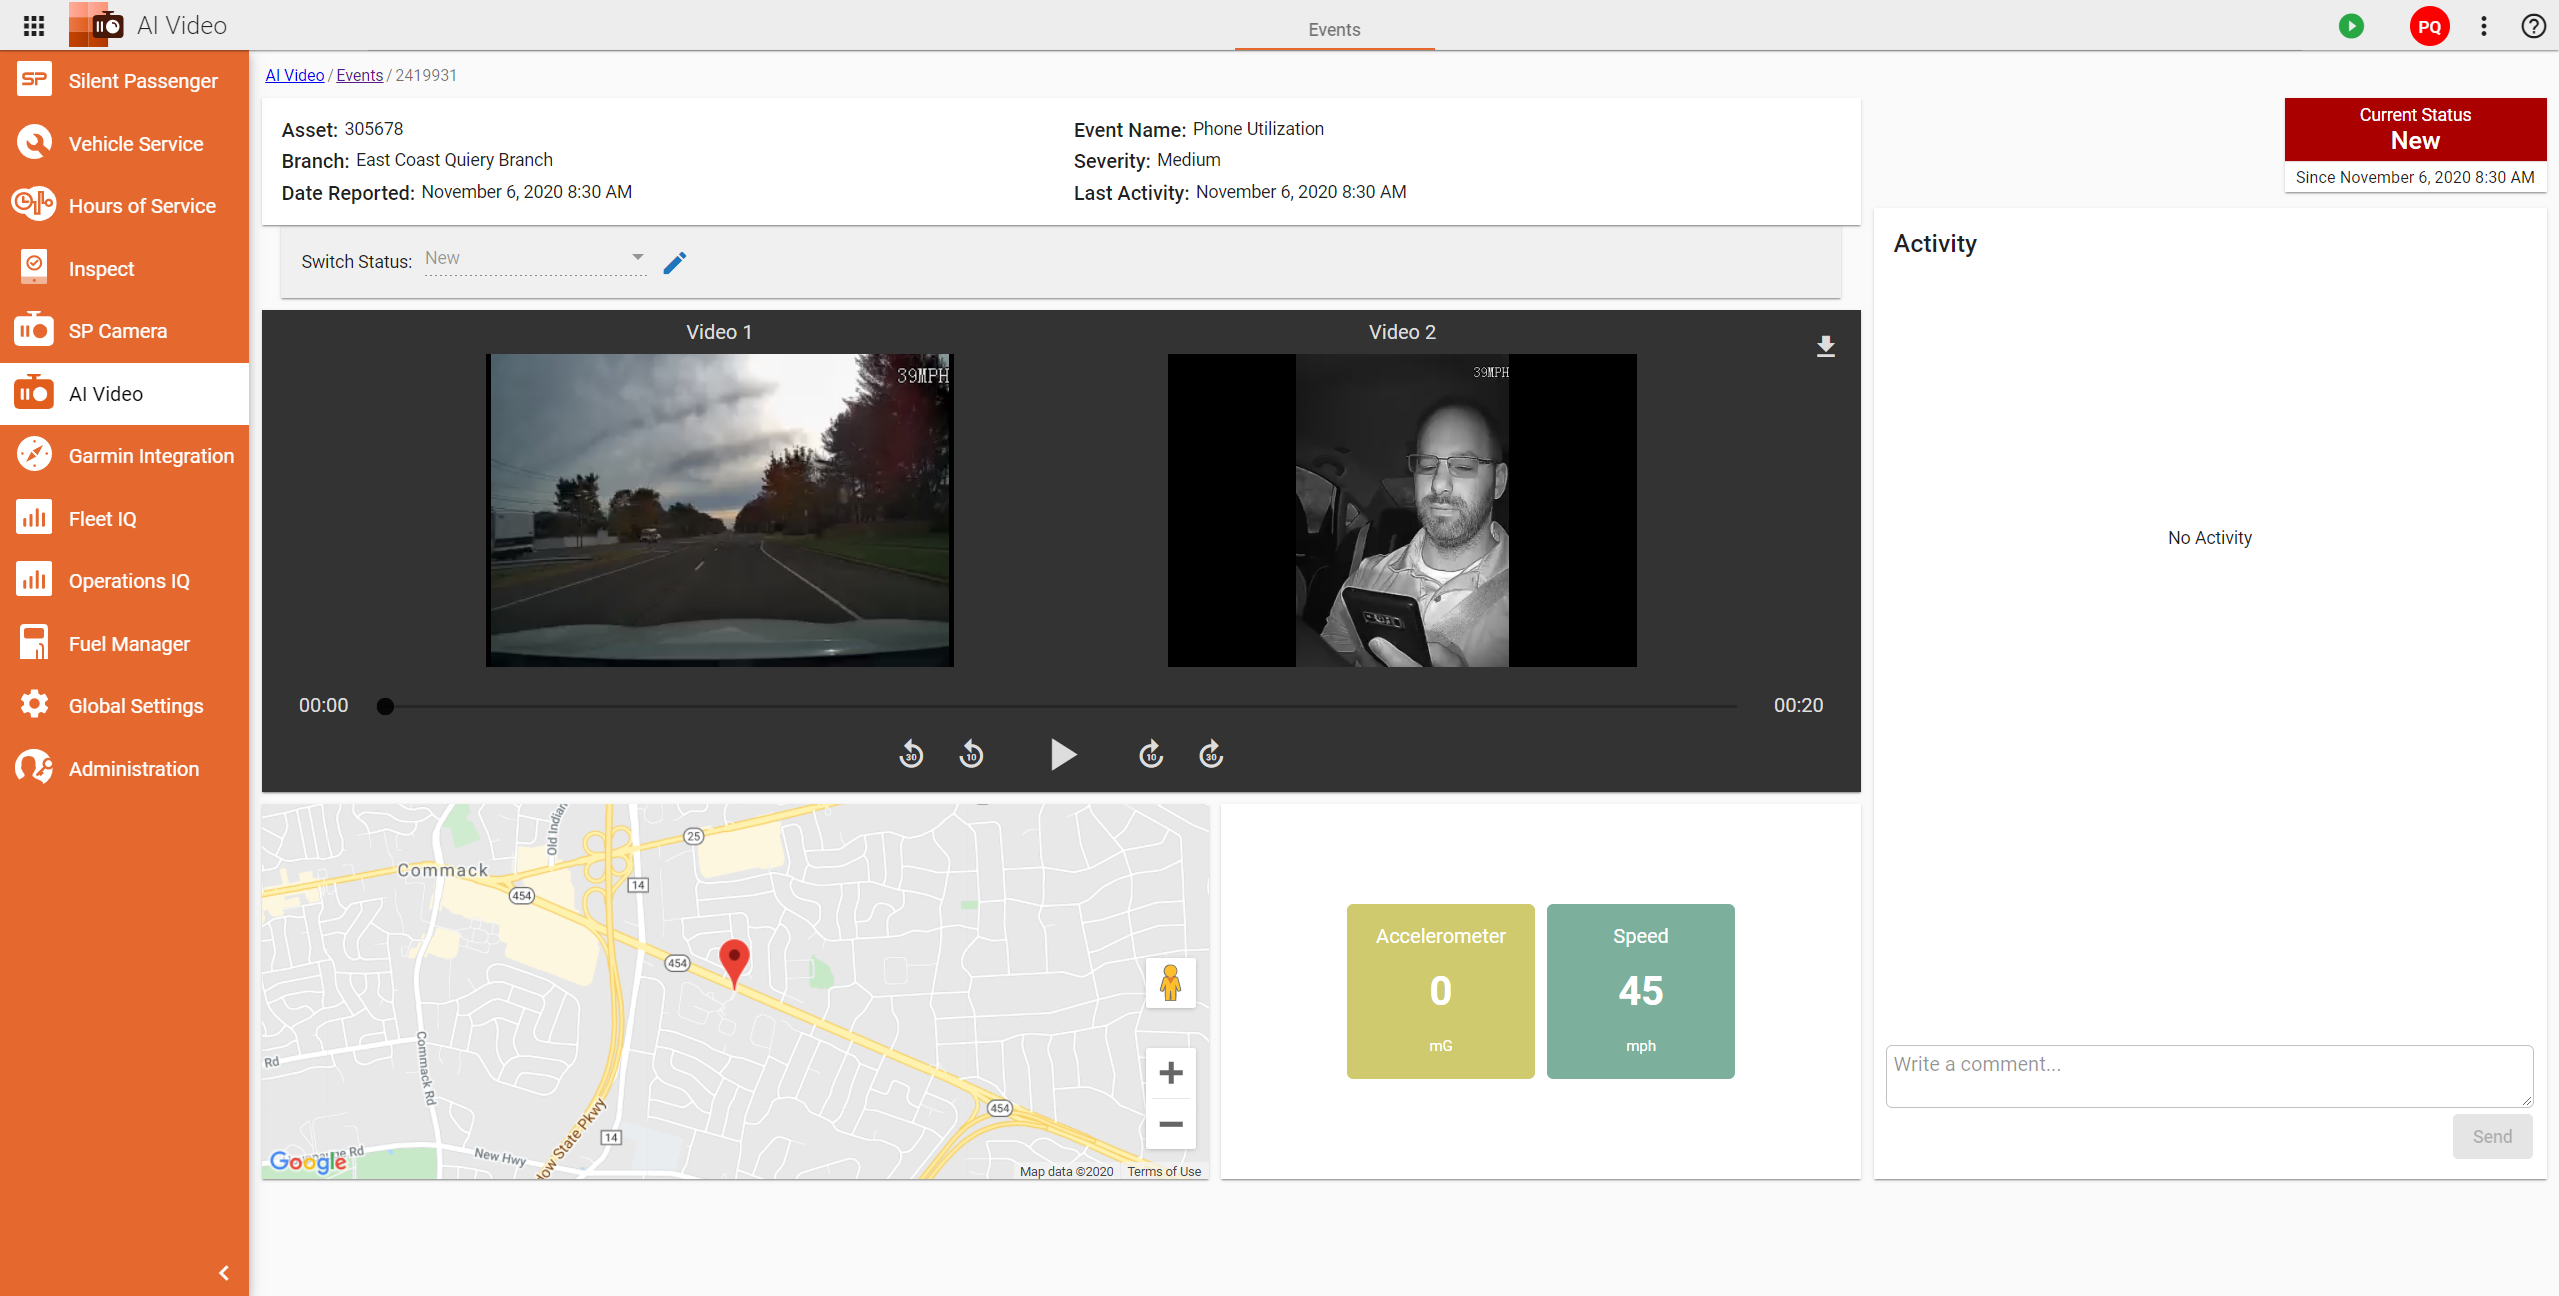 AI VIdeo telematics with 360-degree visibility